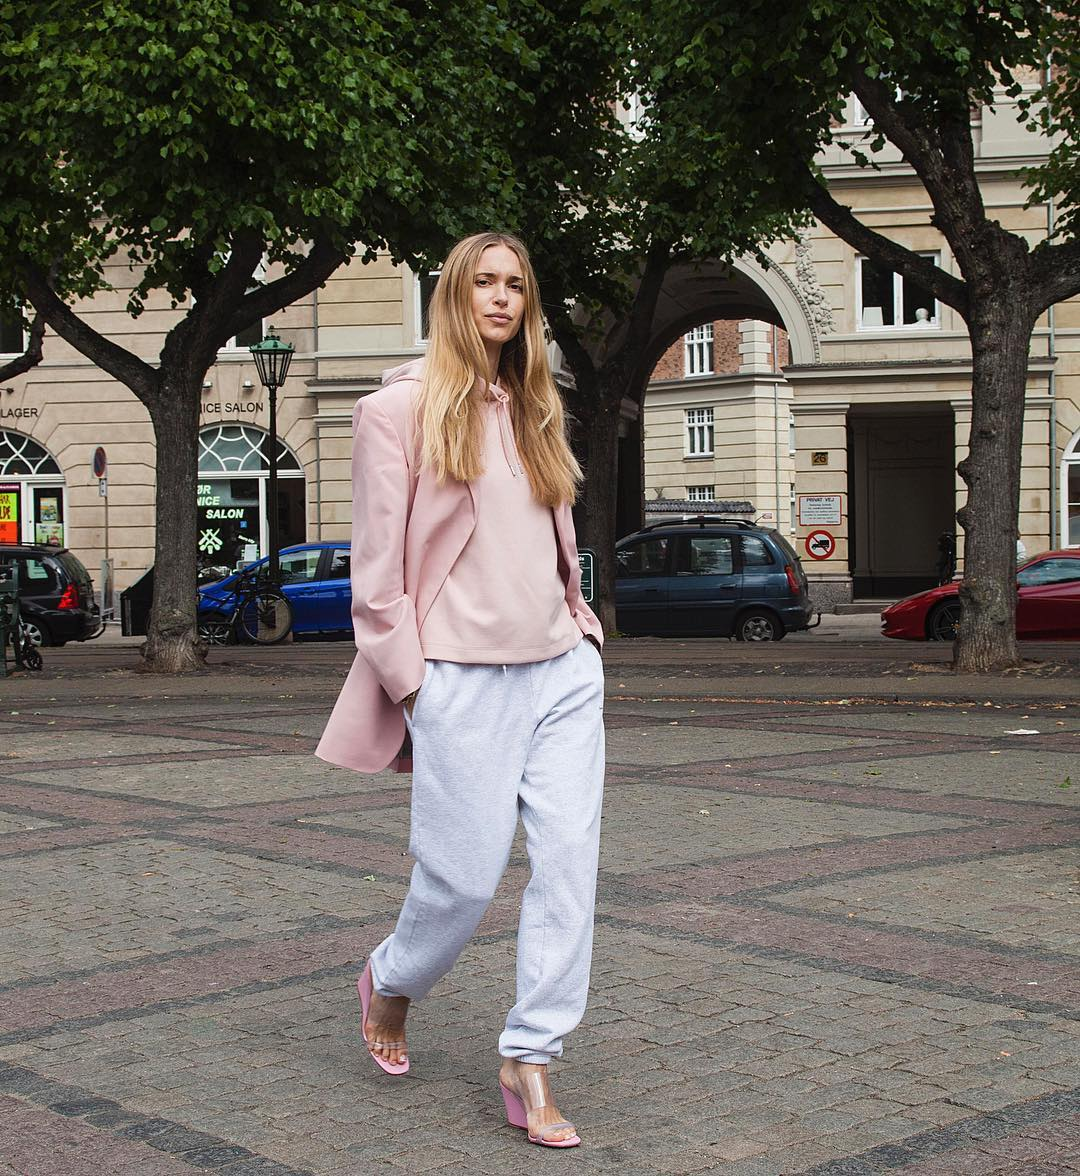 pernille-teisbaek-track-pants-ankle-cuffs-outfit